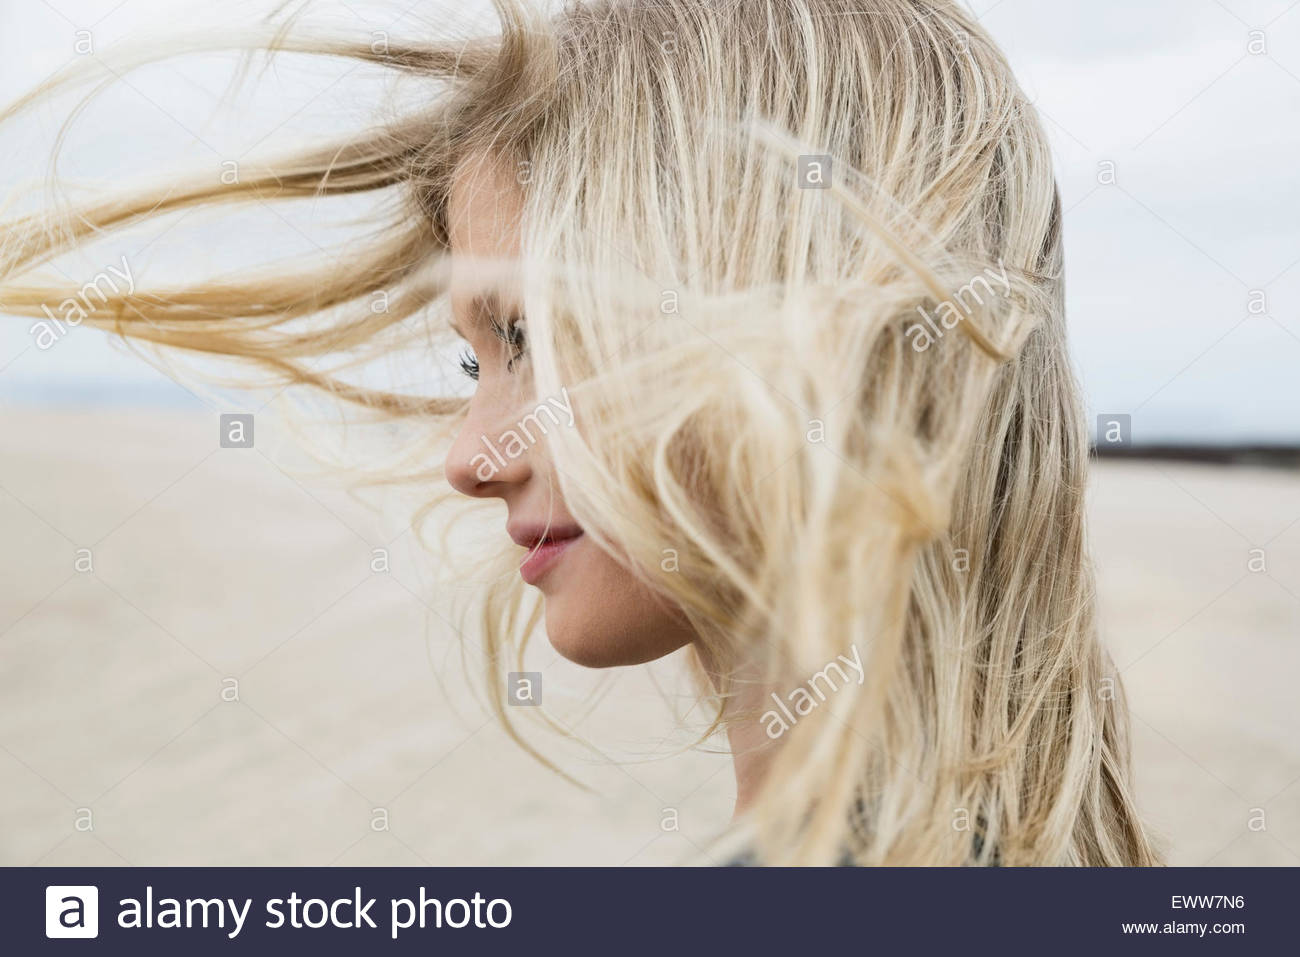 Wind blowing blonde hair of woman at beach - Stock Image